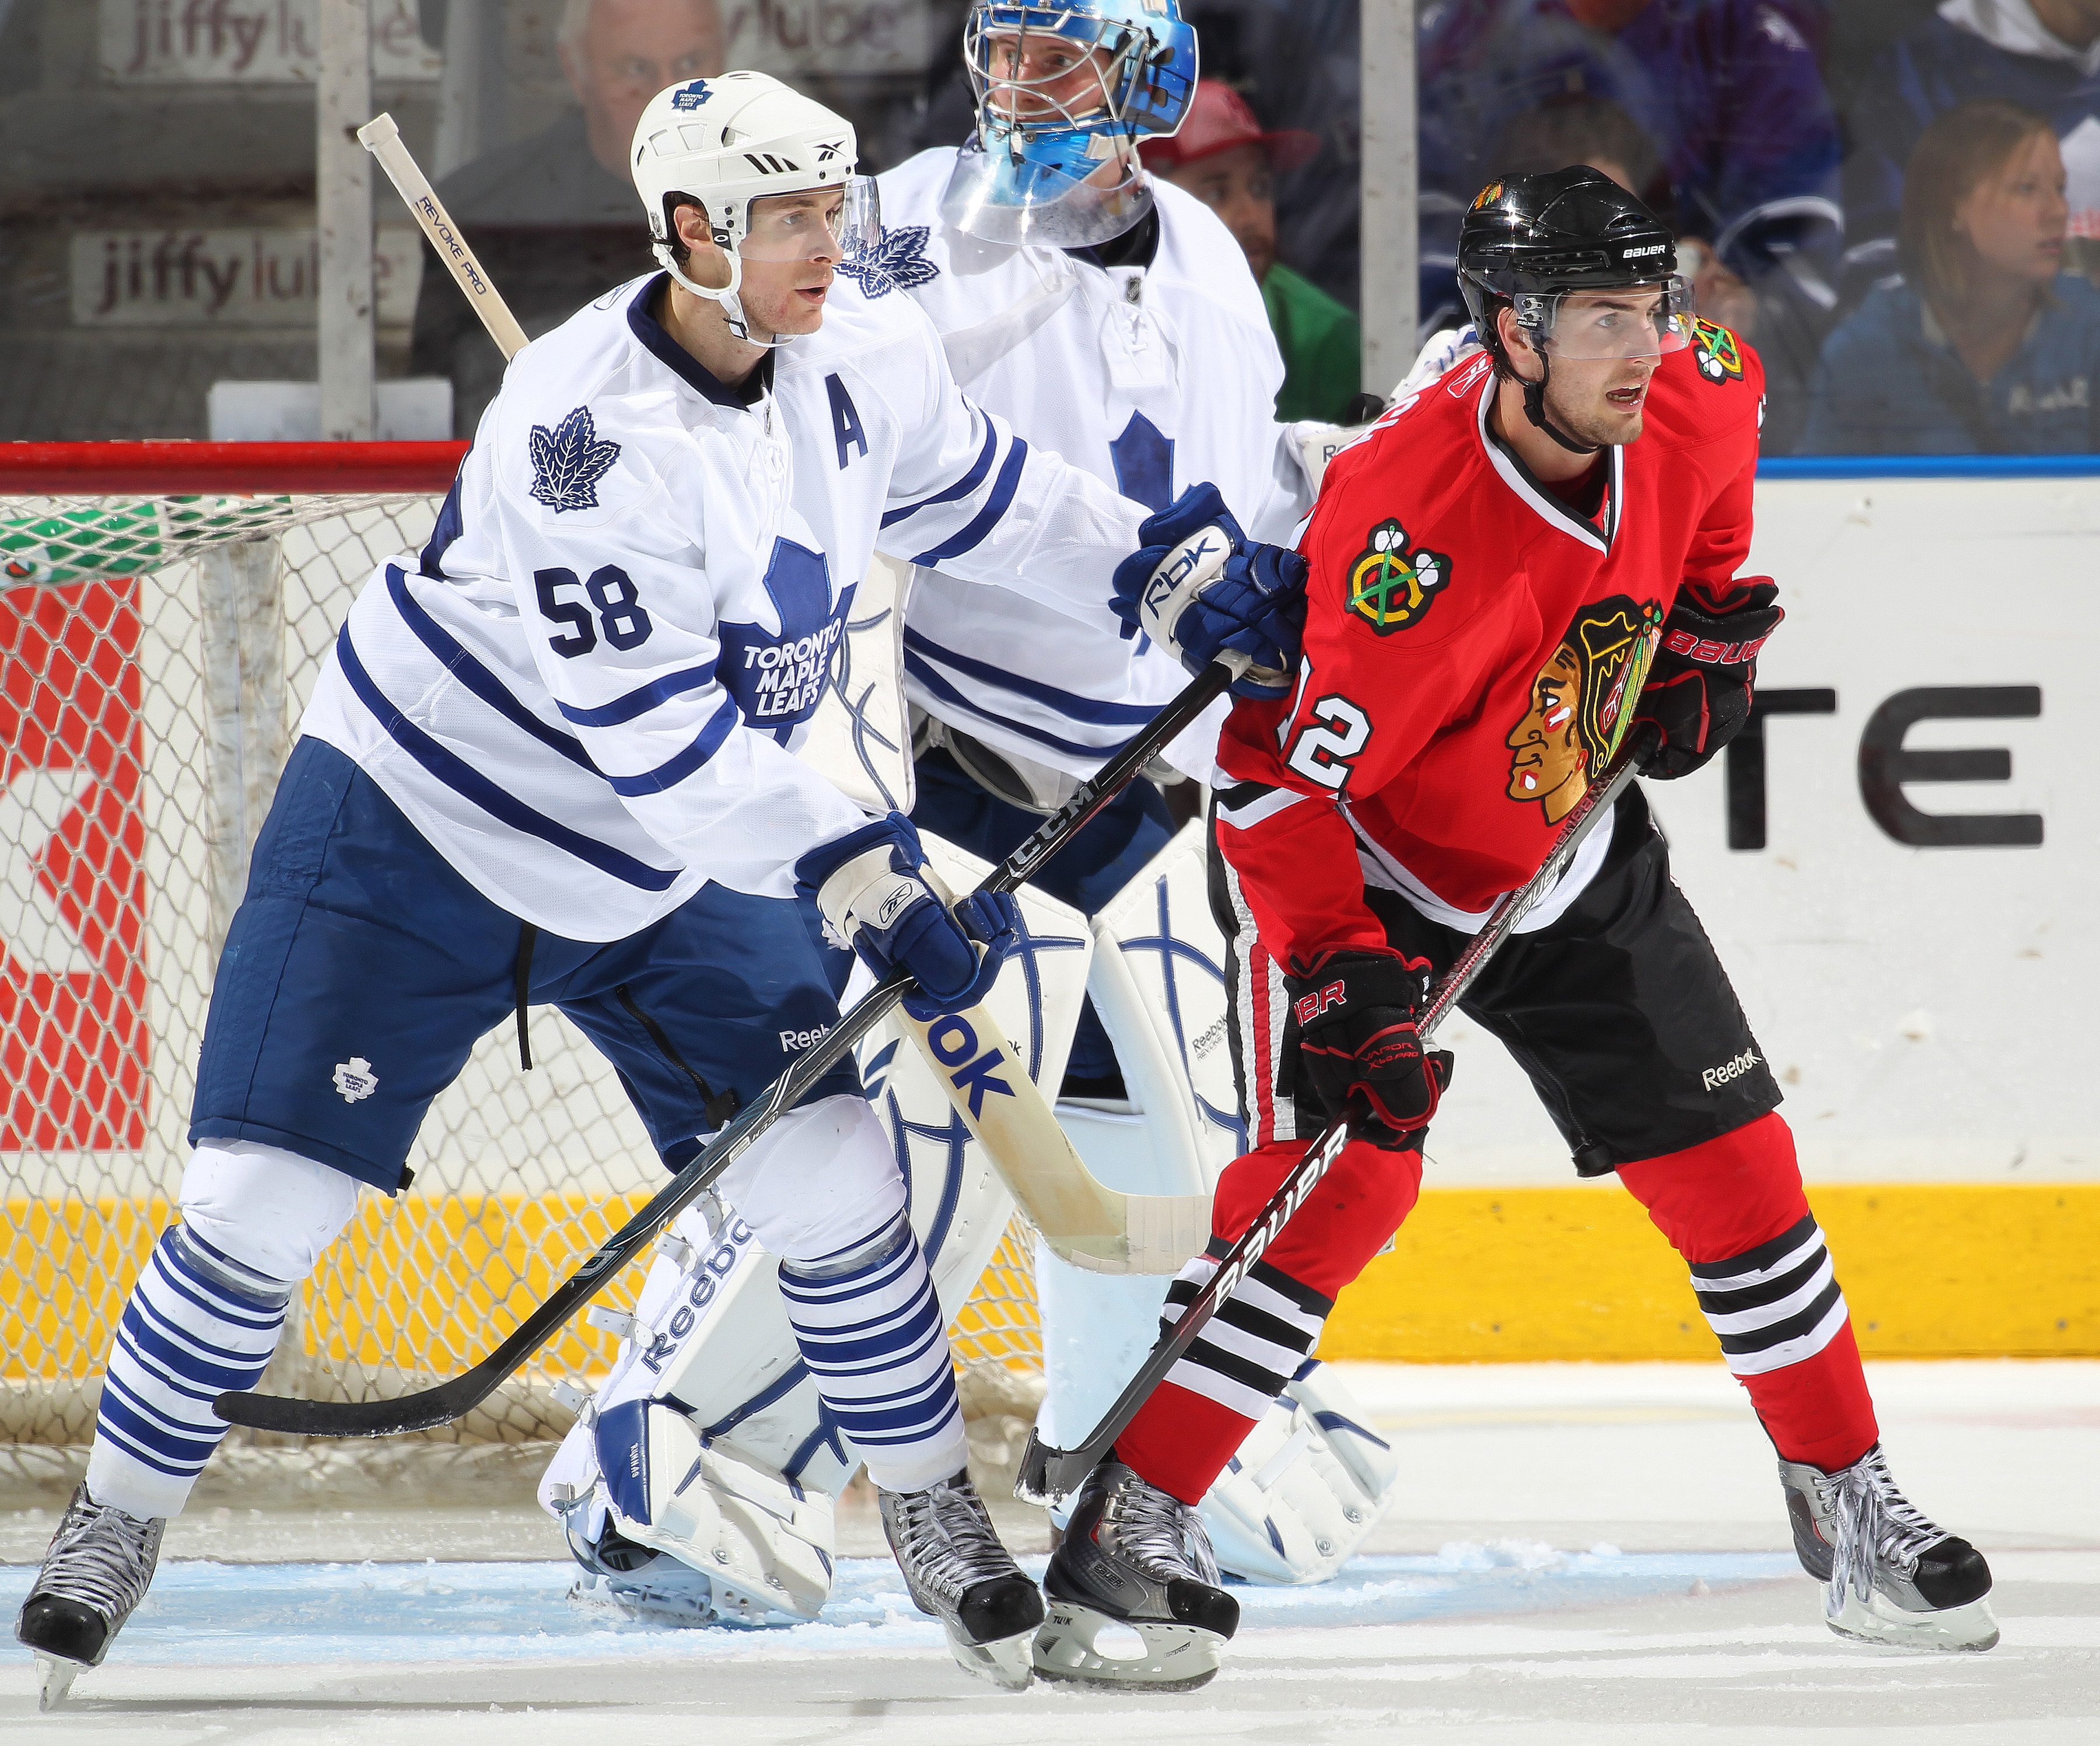 NHL Rookie Tournament - Chicago Blackhawks v Toronto Maple Leafs